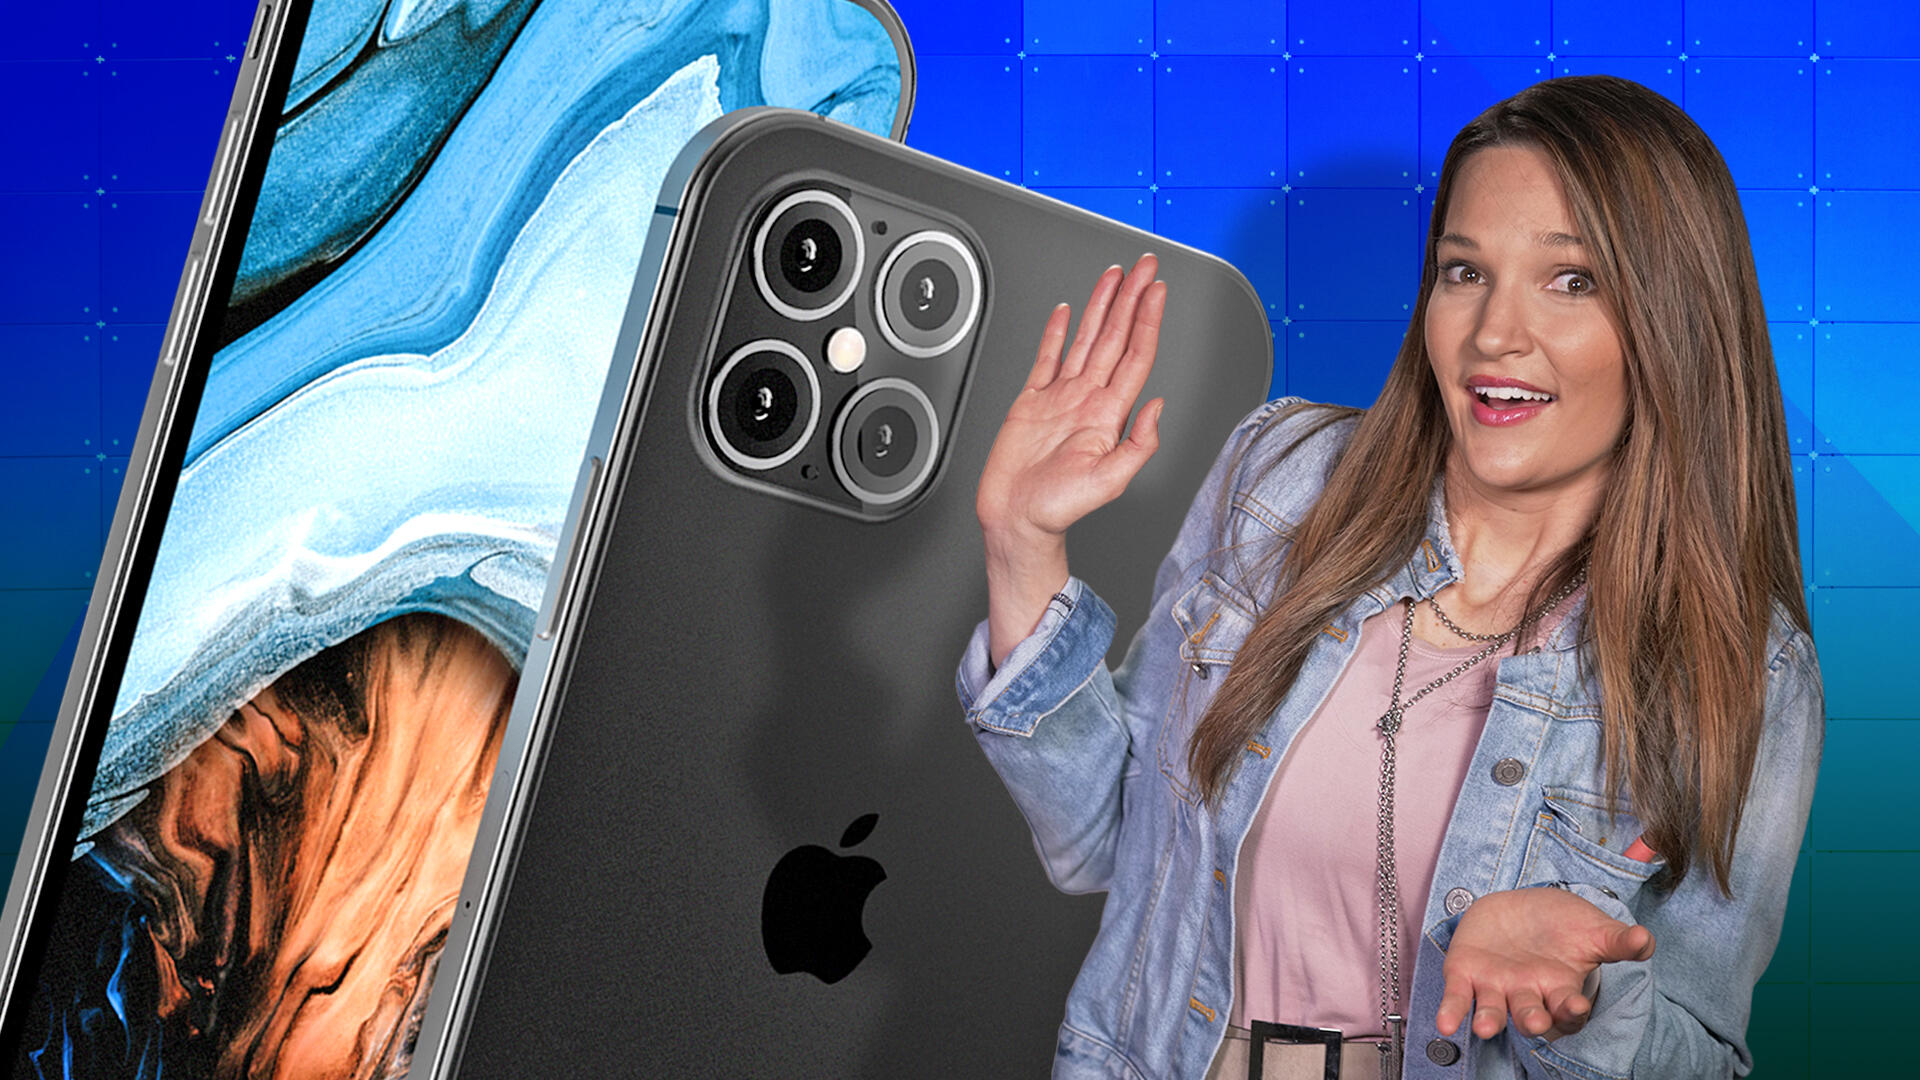 Video: The iPhone 12 will be a huge upgrade